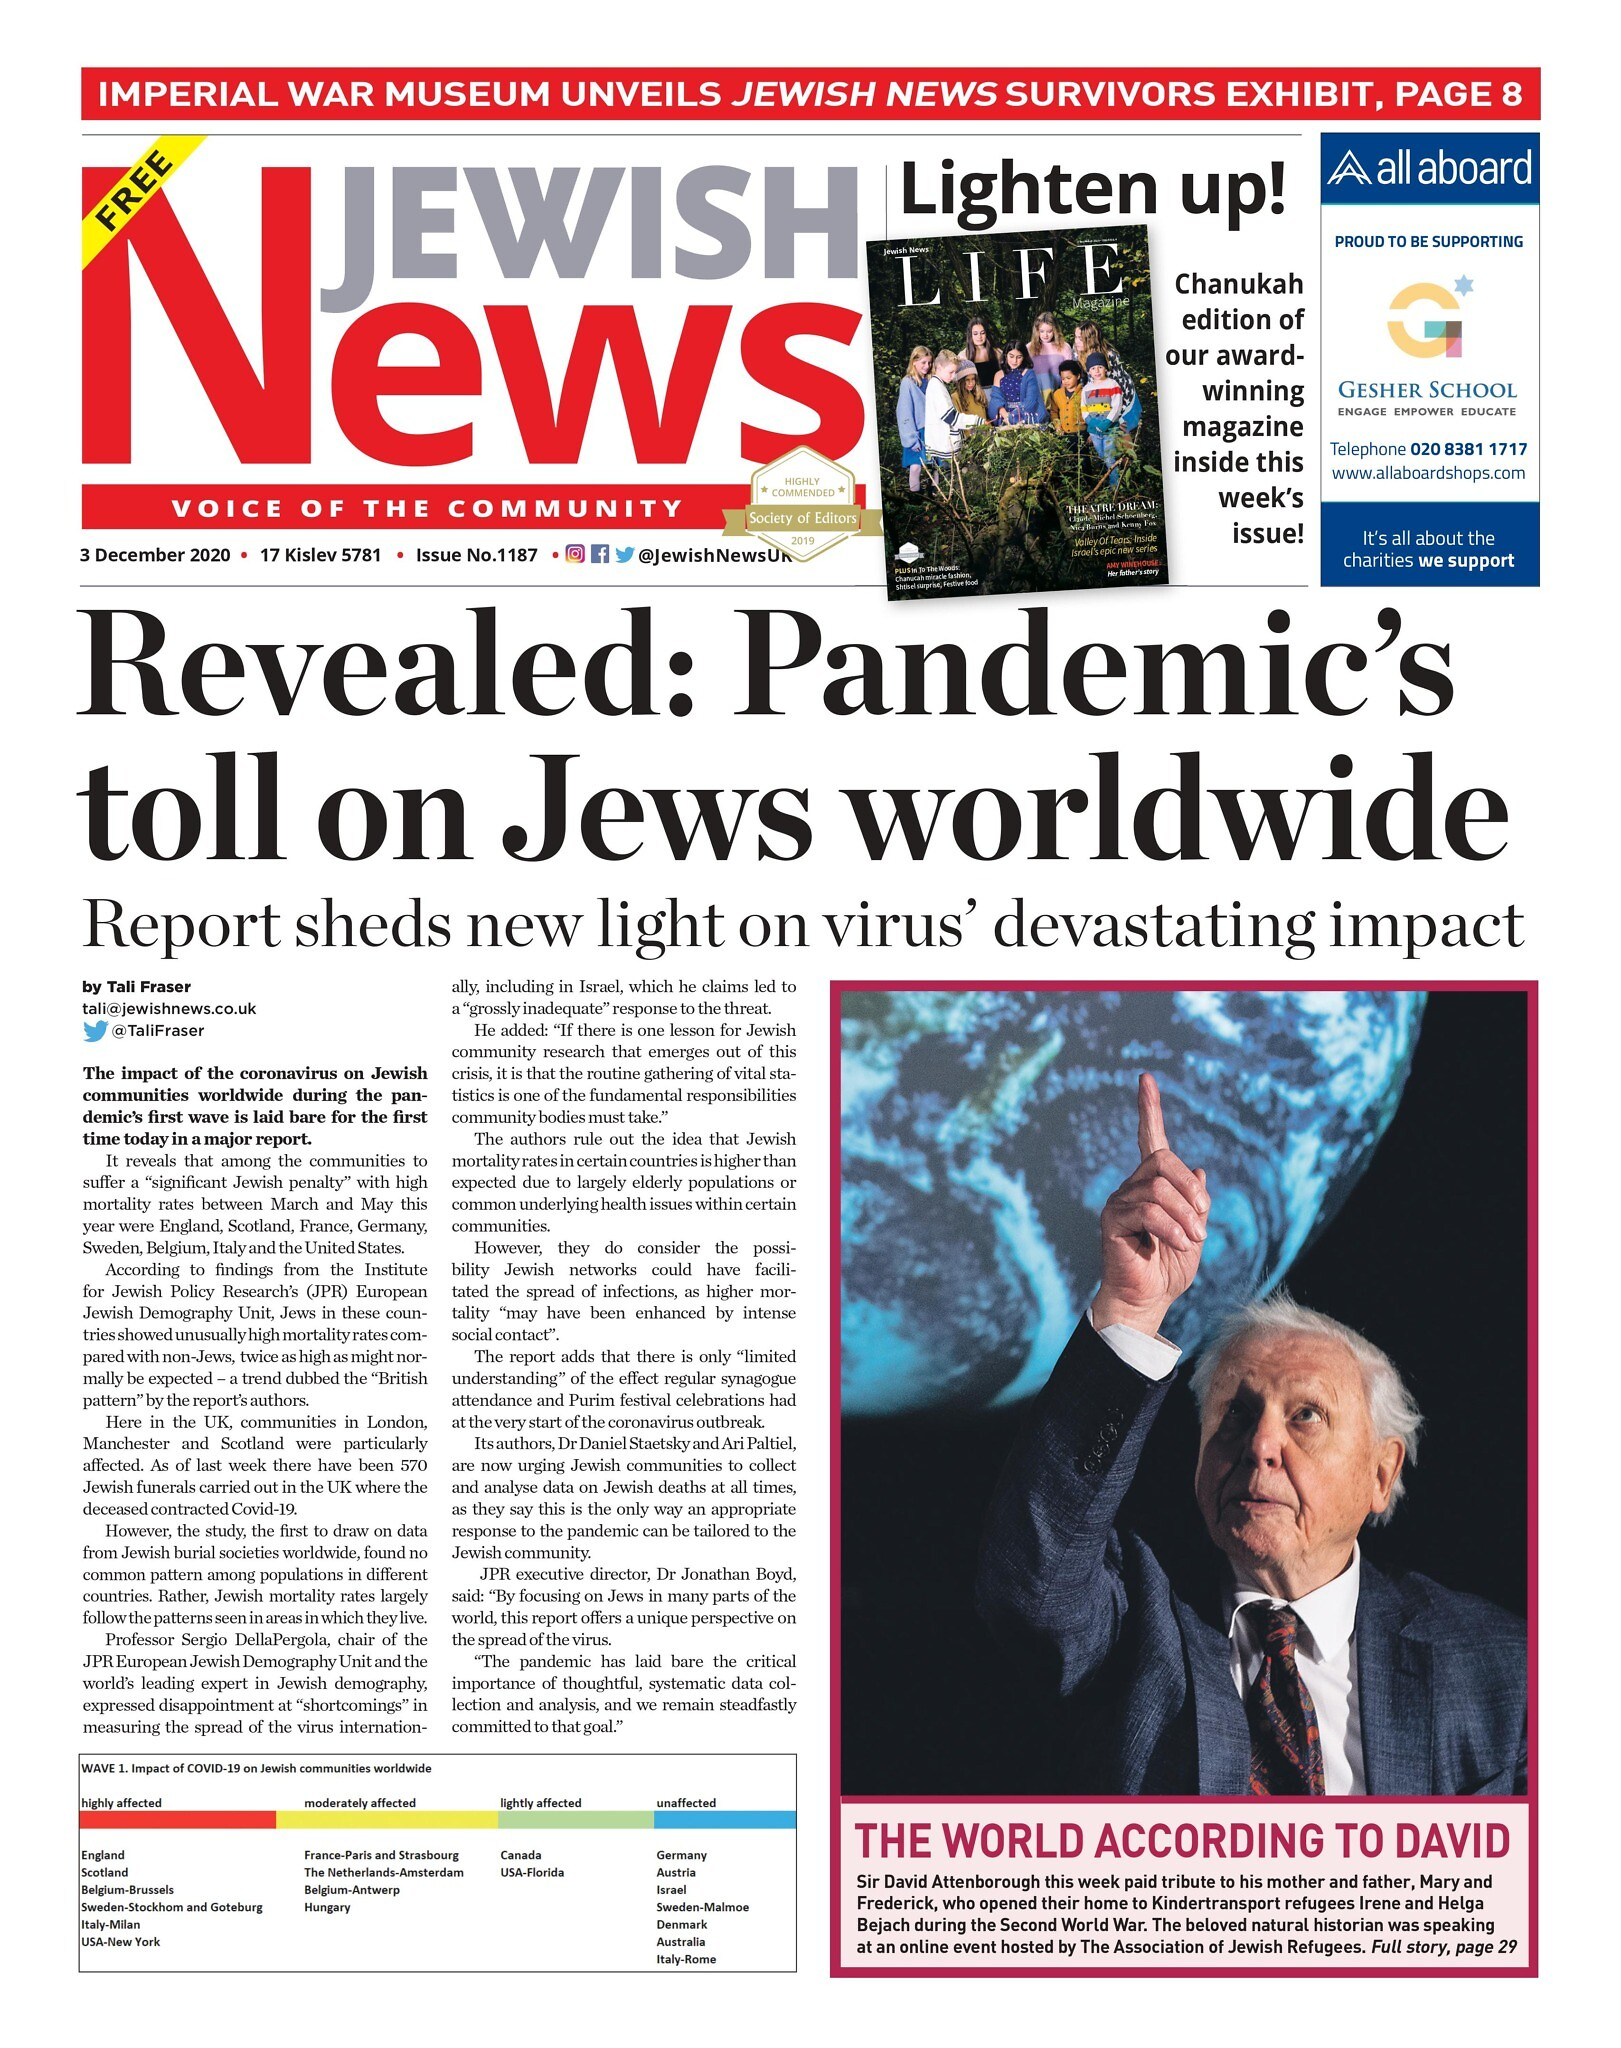 This week's Jewish News